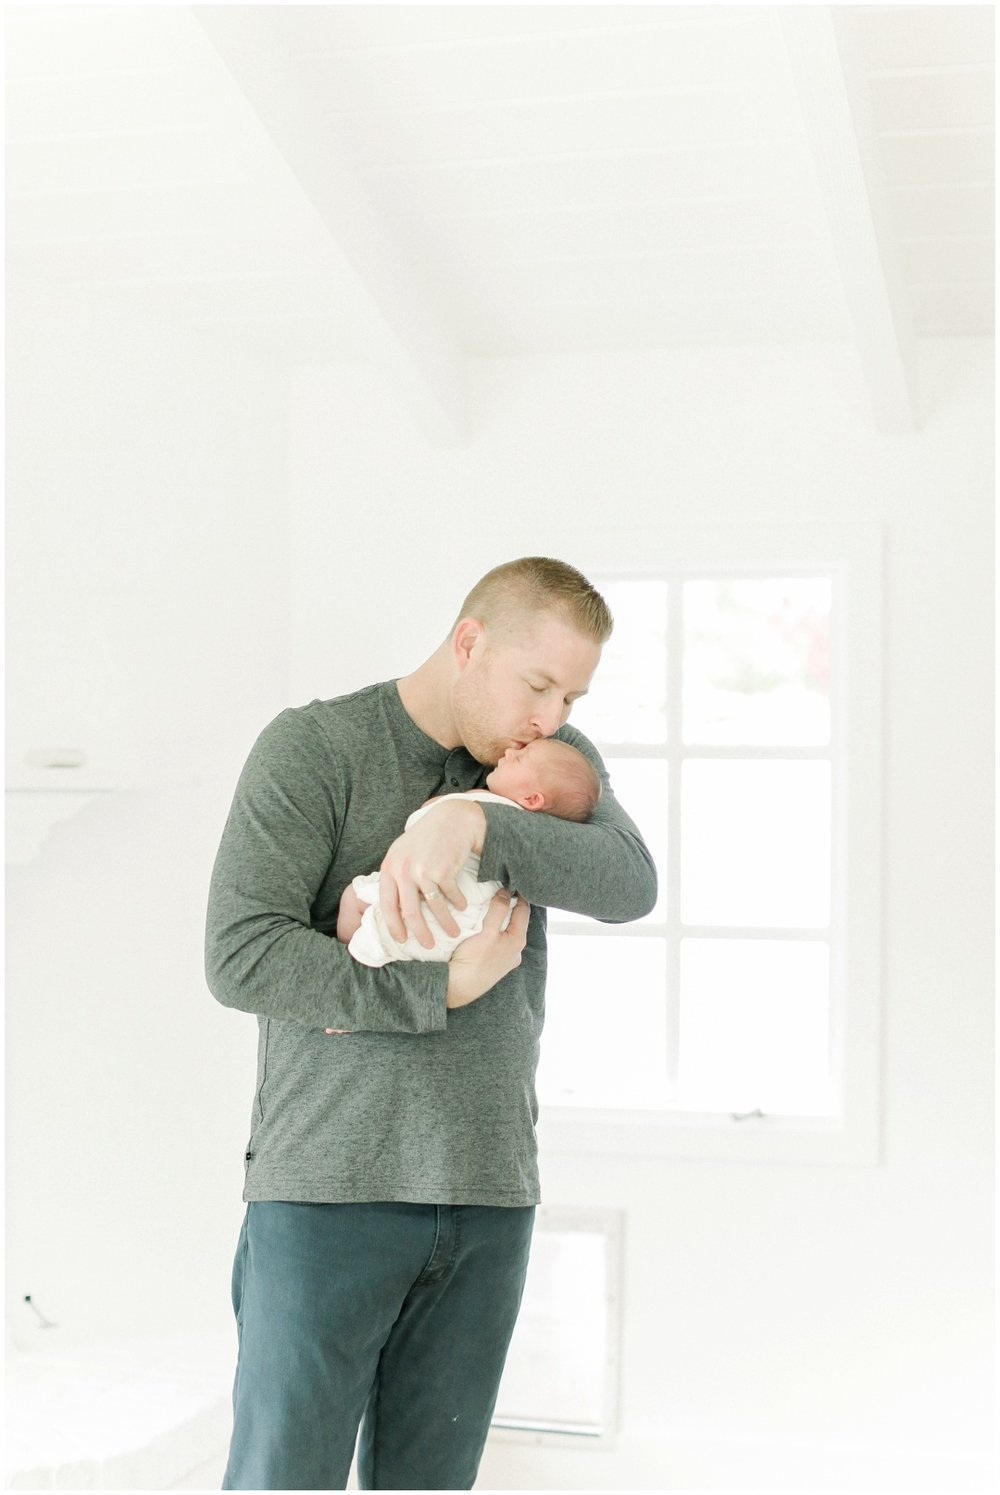 Newport_Beach_Newborn_Photographer_Newport_Beach_Maternity_Photographer_Orange_County_Family_Photographer_Cori_Kleckner_Photography_Huntington_Beach_Photographer_Maile_Trumbo_Mark_Trumbo_Photos_2701.jpg